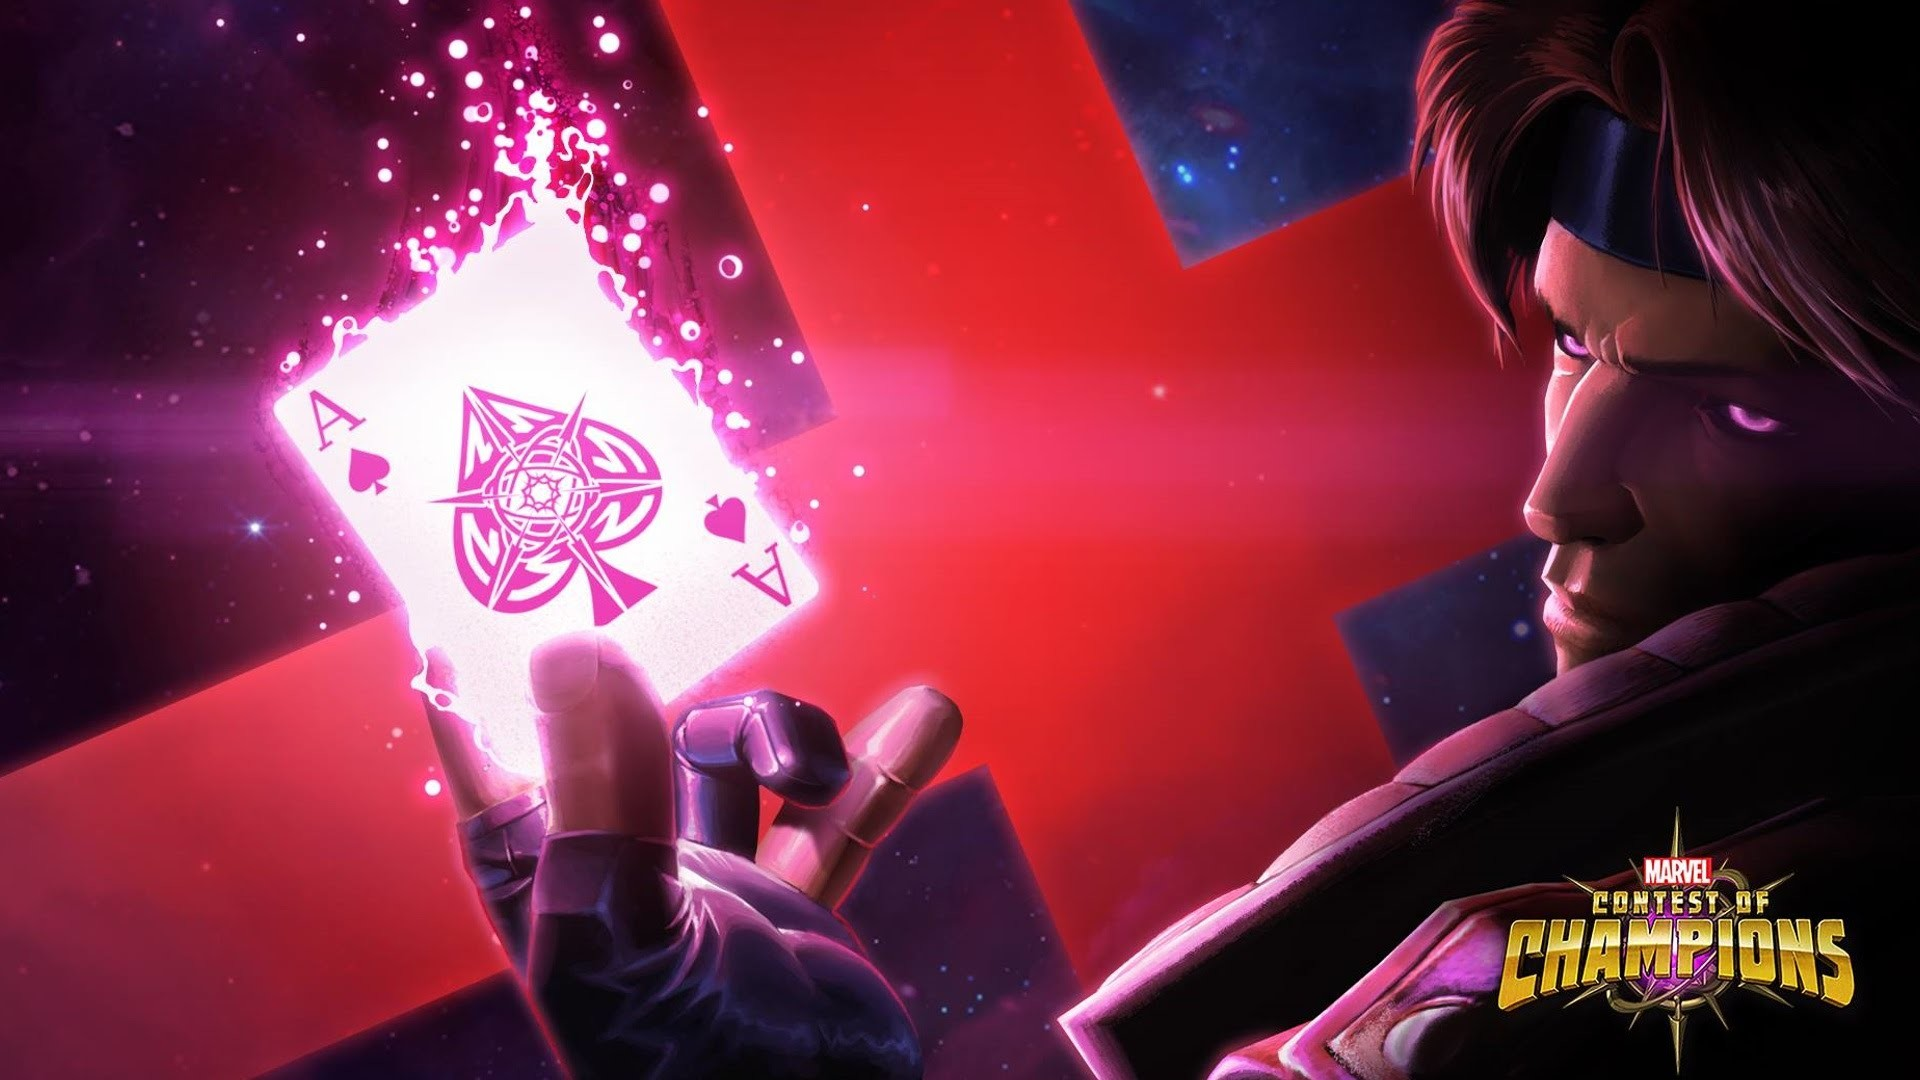 GAMBIT IS COMING NEXT to MARVEL Contest of Champions